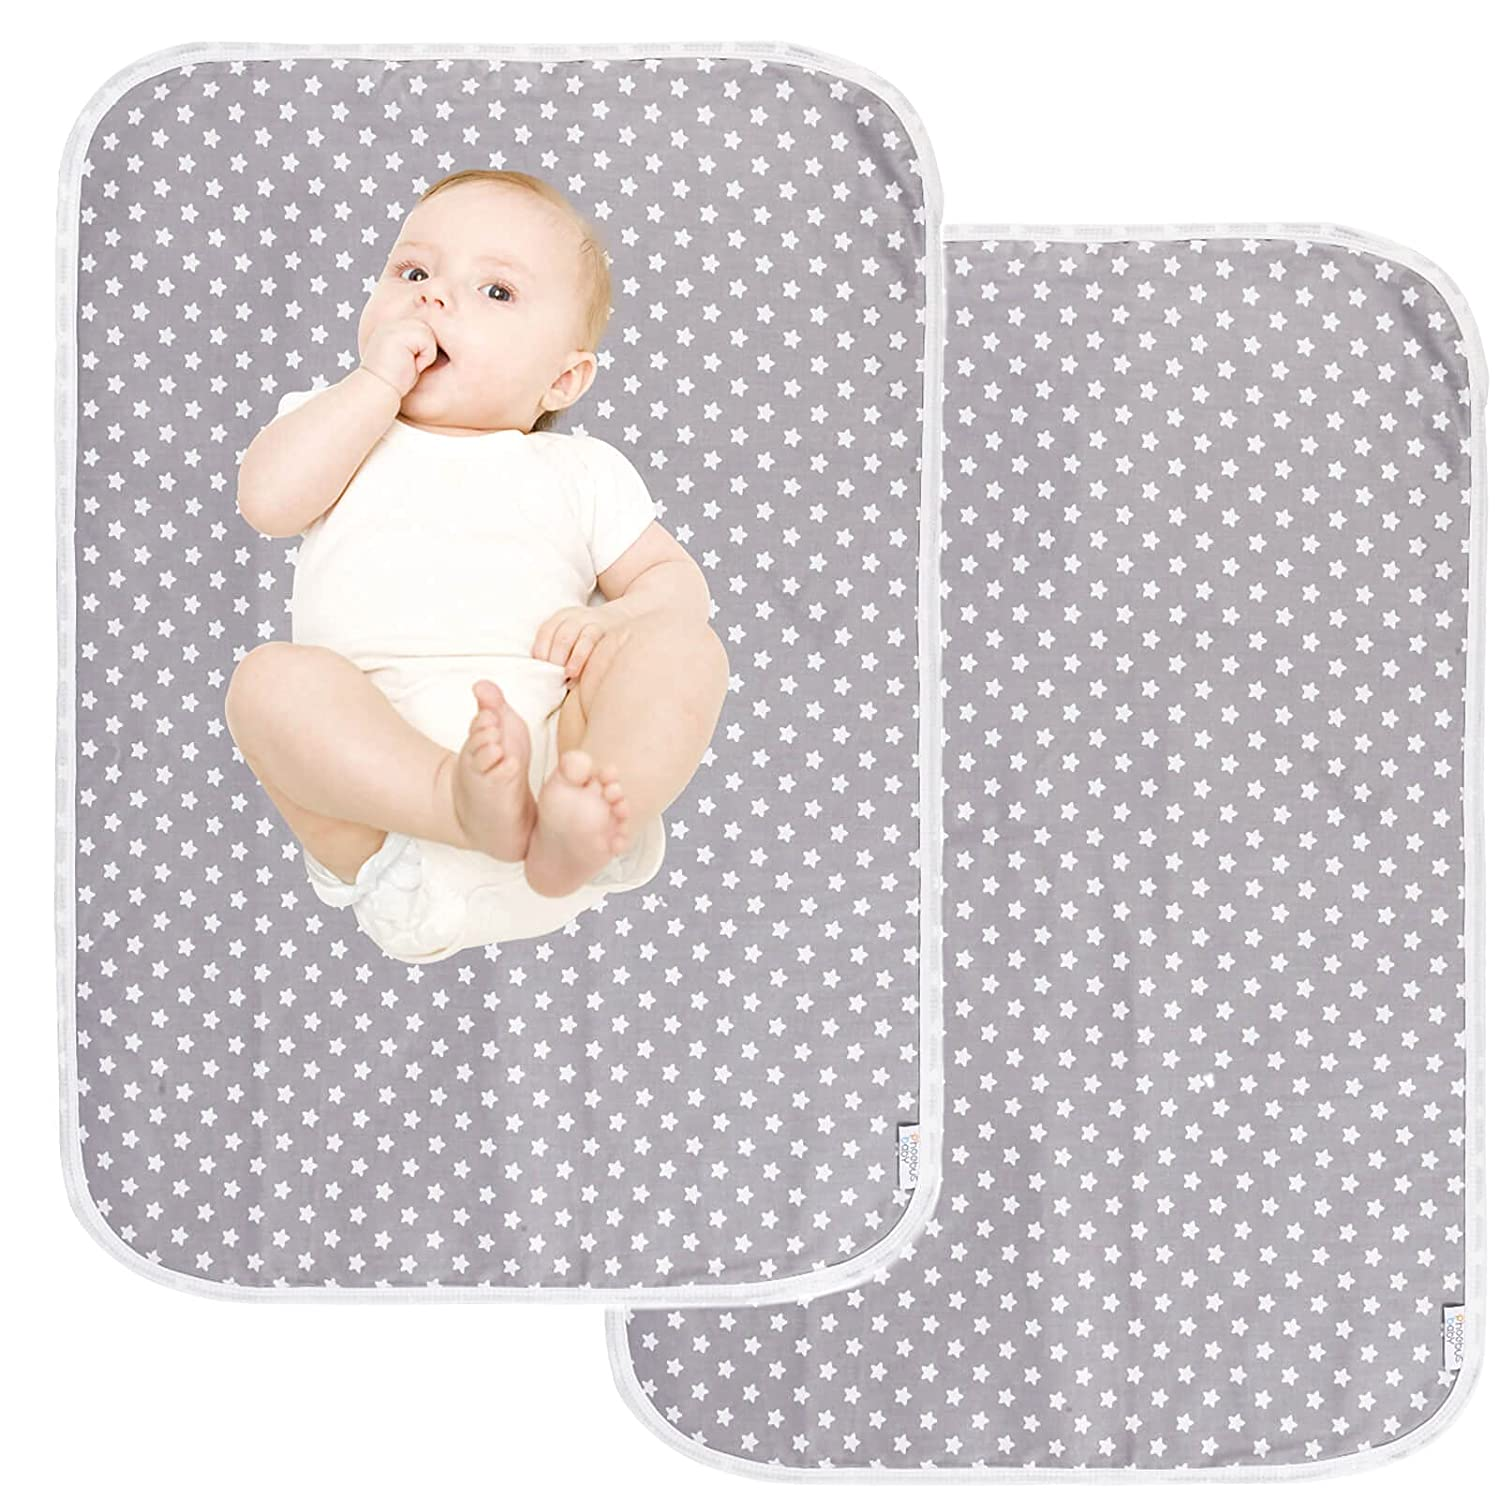 Baby Portable Diaper Changing Pad, 21.7